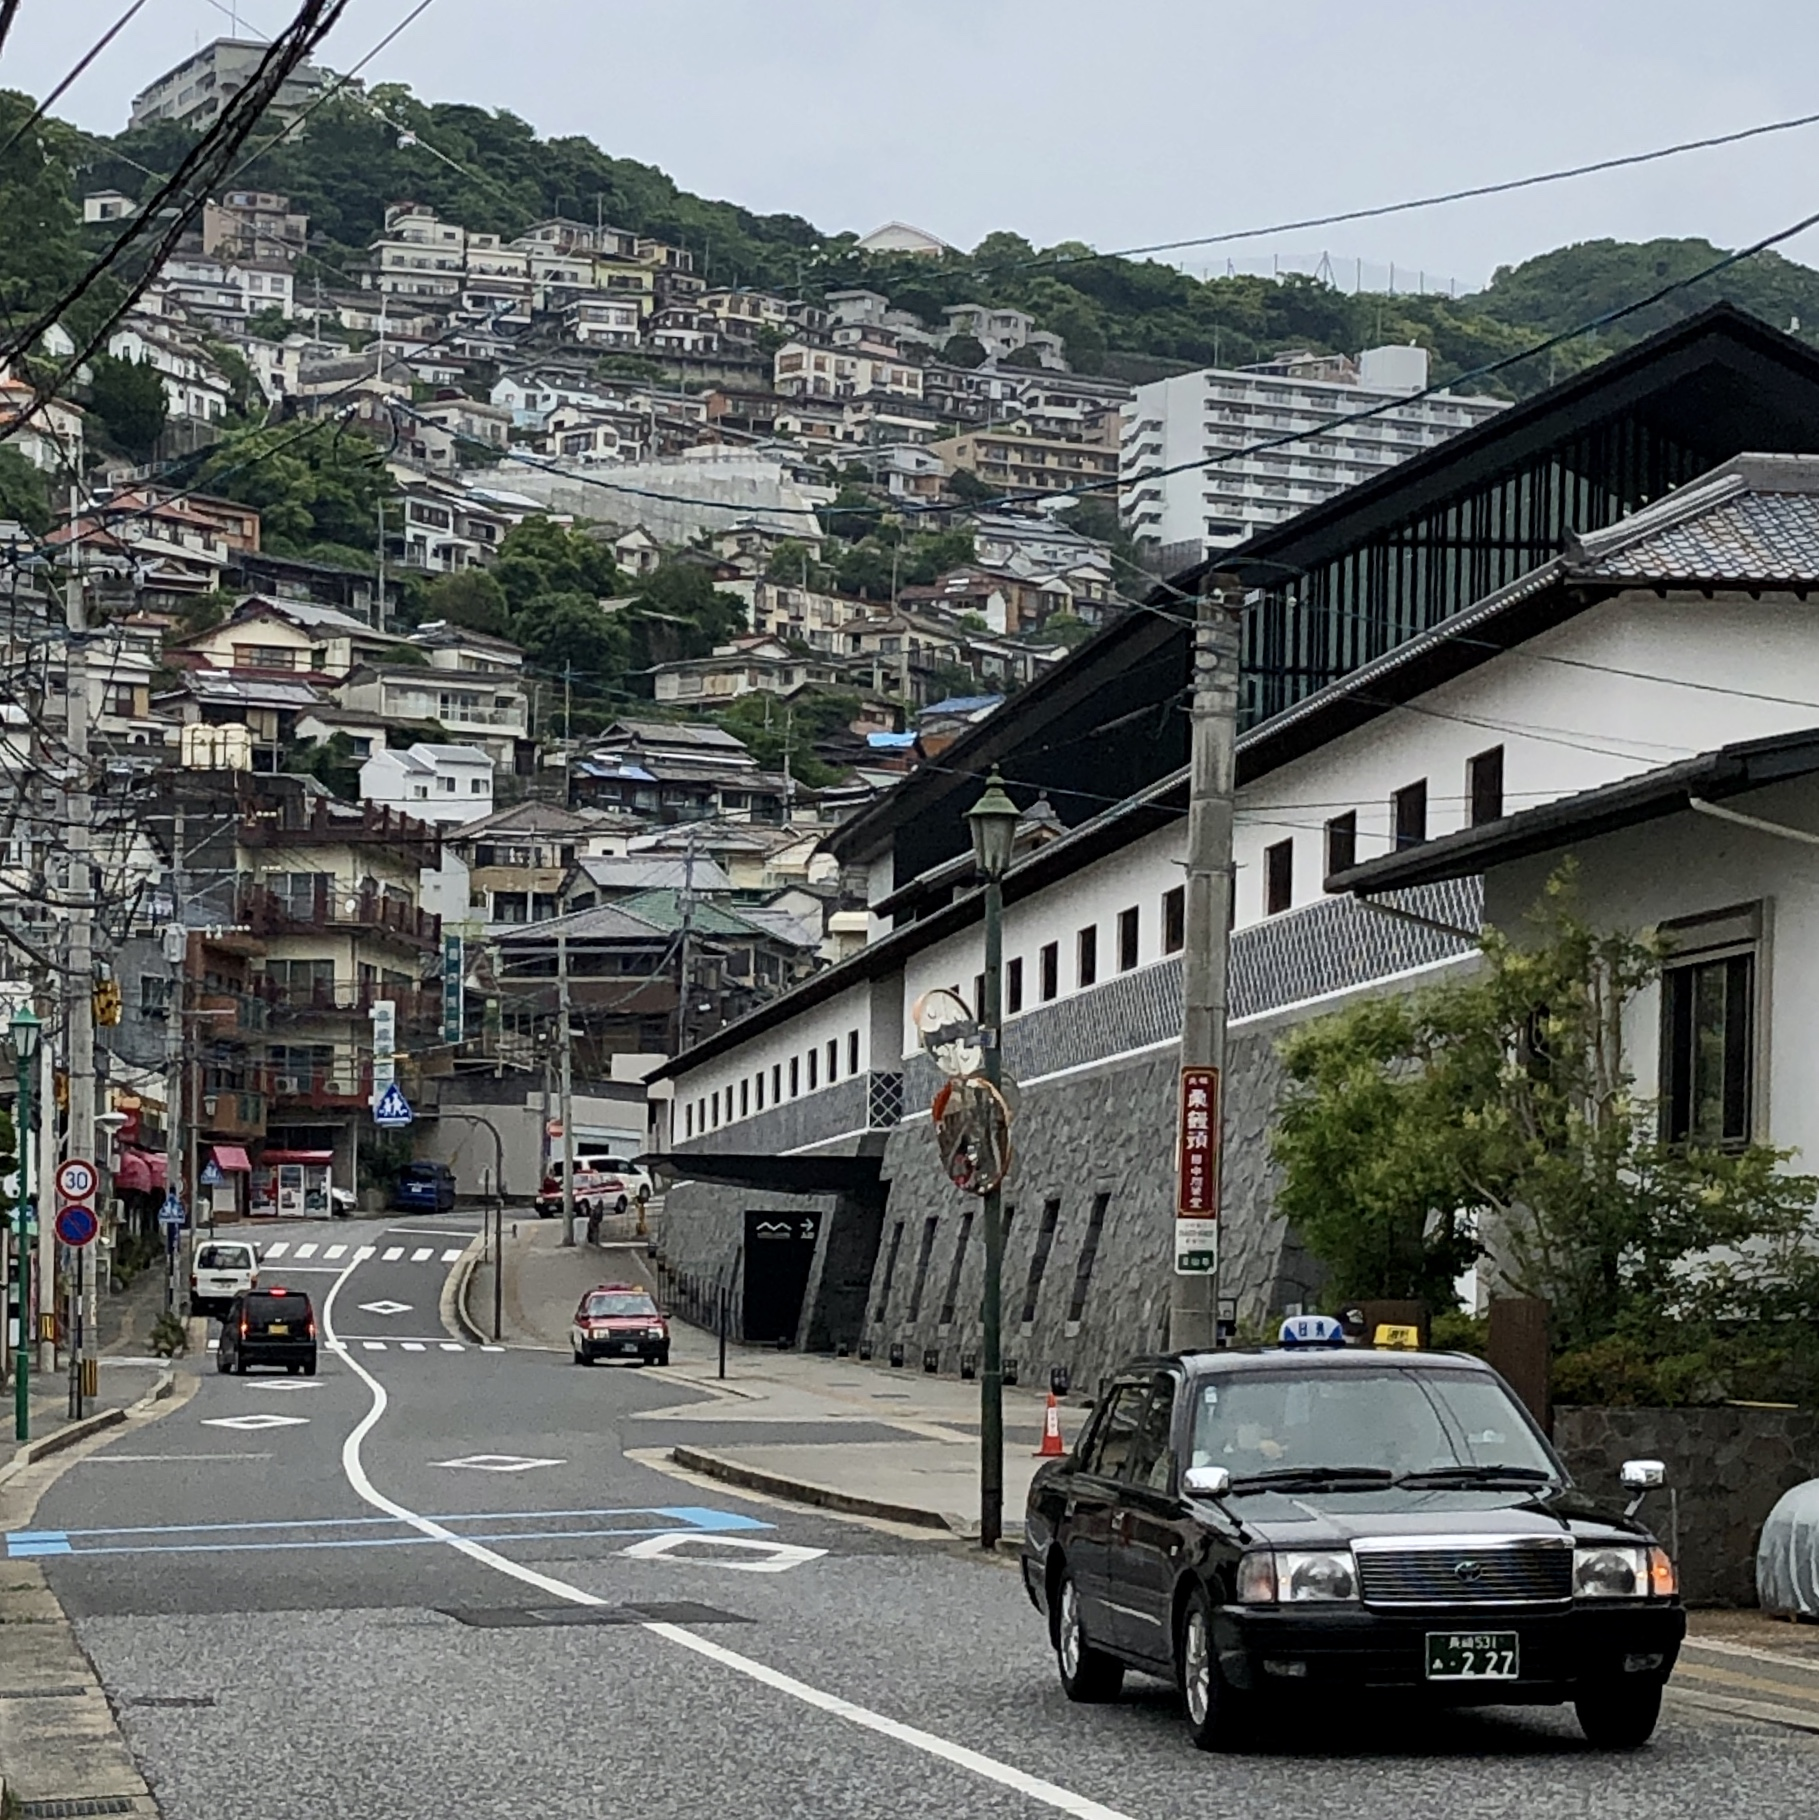 Street in front of a building, with hill behind and many houses and buildings on a steep hill